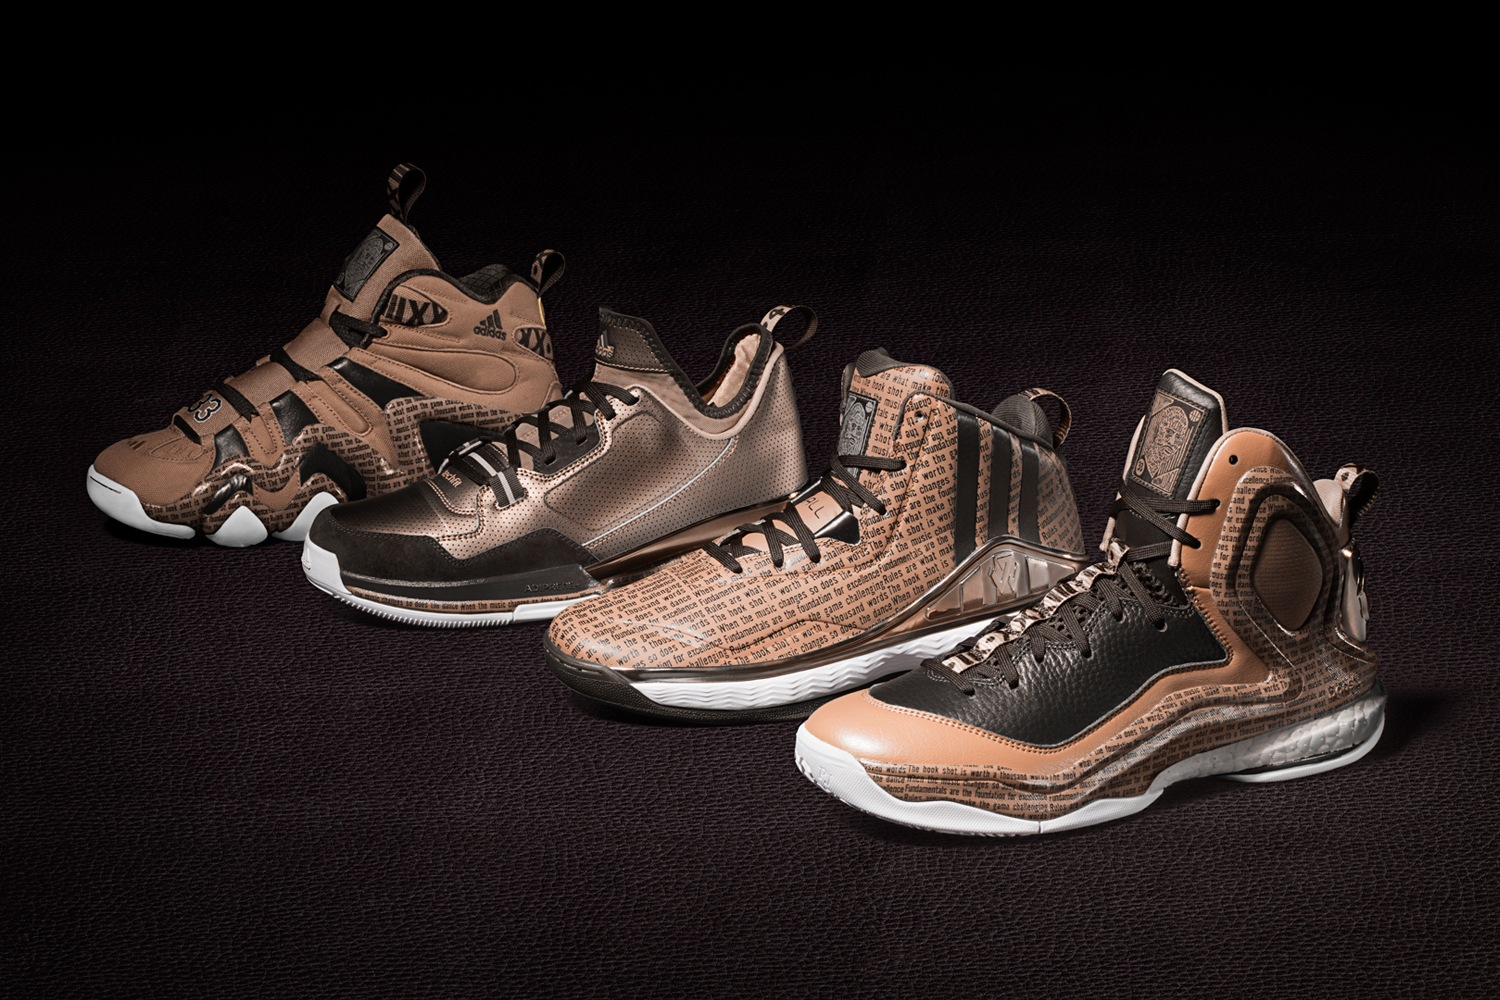 Adidas releases limited edition Black History Month collection